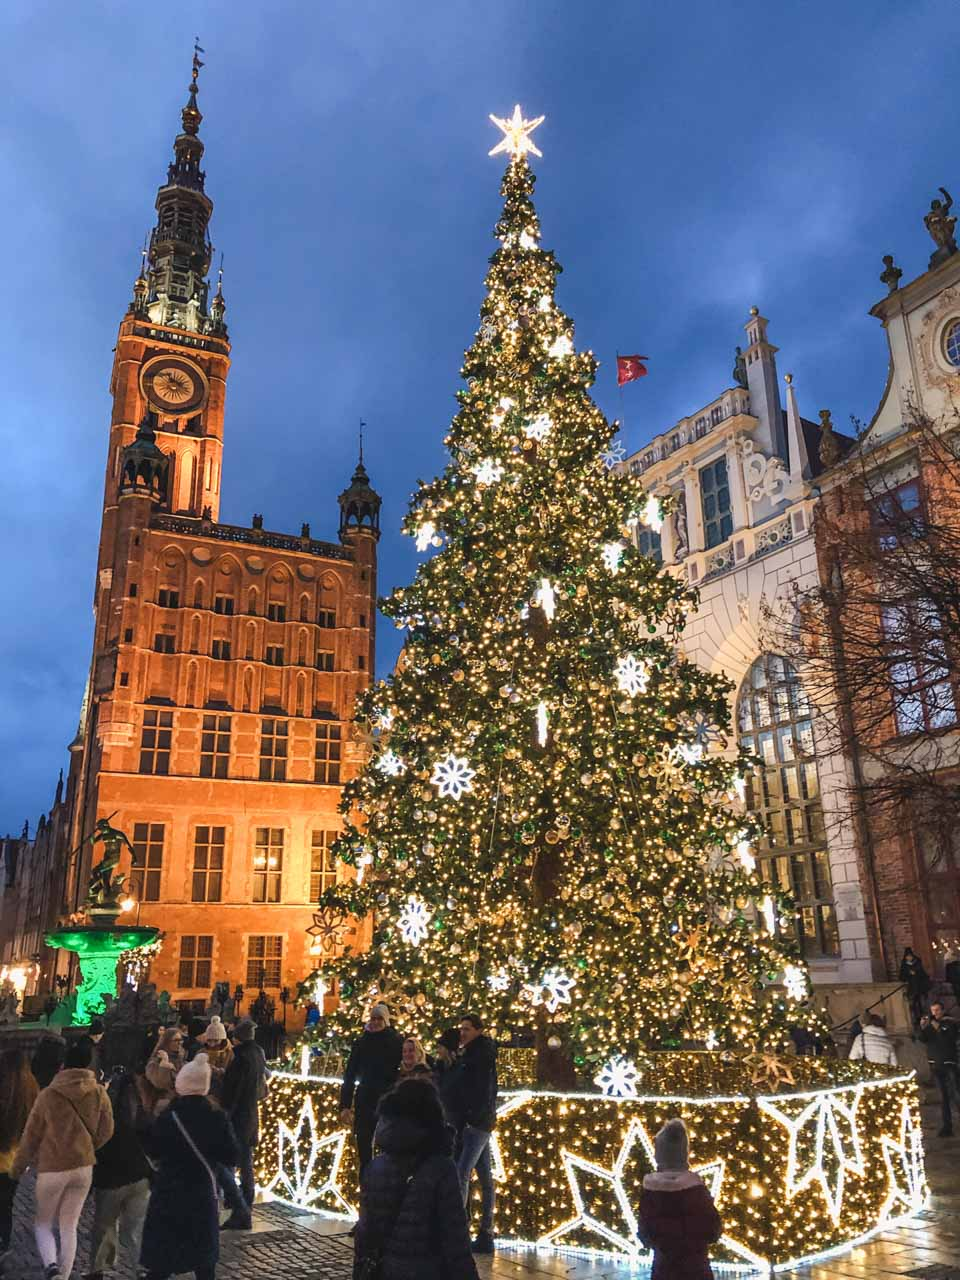 A Christmas tree outside the Artus Court in Gdańsk, Poland